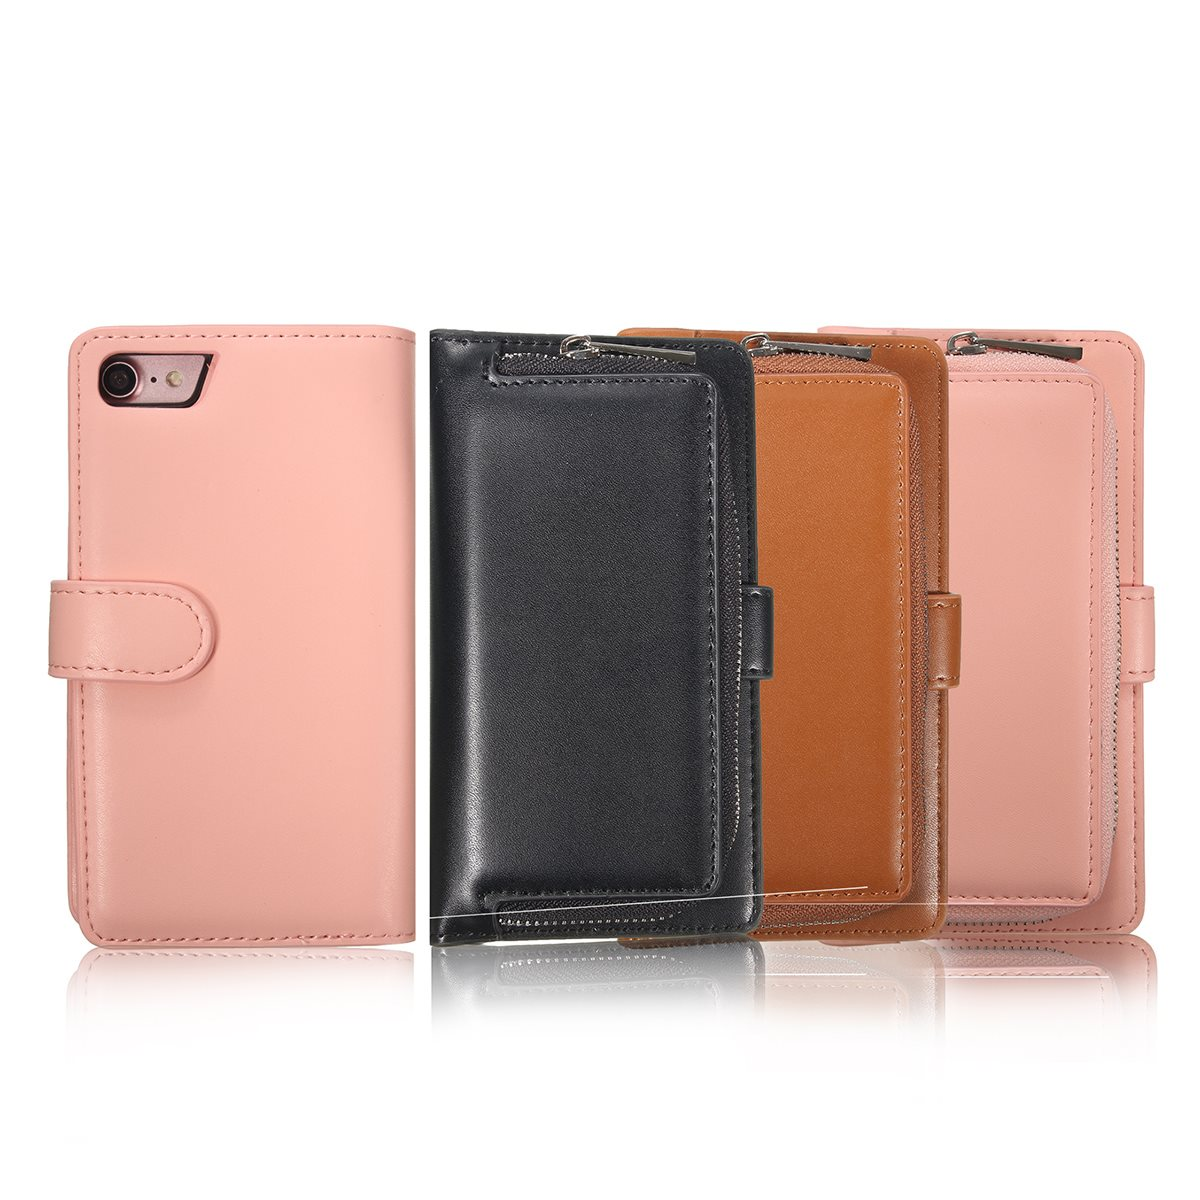 Cooperative Kicute Luxury Magnetic Zipper Leather Flip Wallet Protective Case Cover Stand For Iphone 7 Removable Multifunctional Card Holder Harmonious Colors